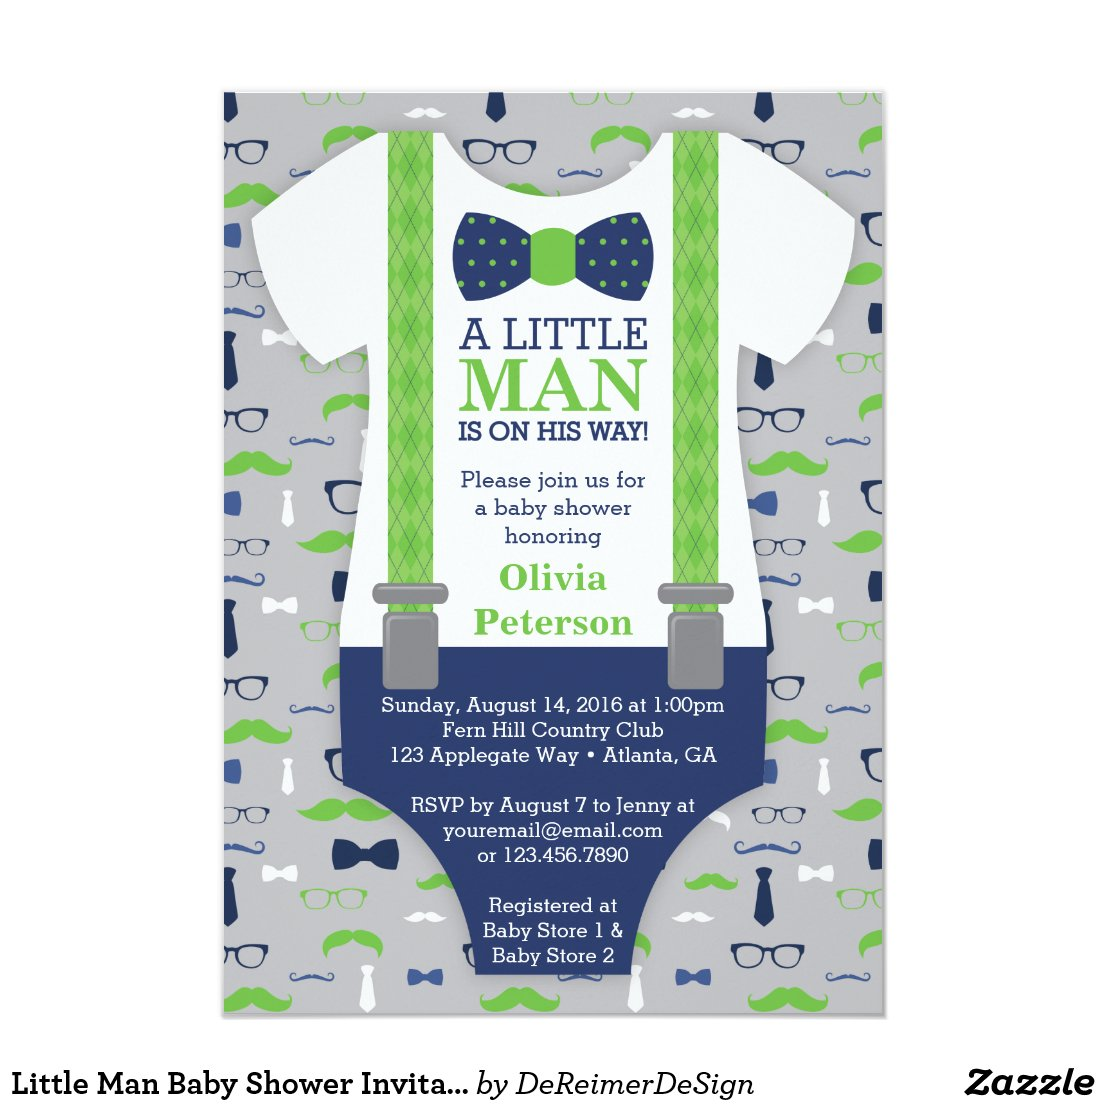 Little Man Baby Shower Invitation, Blue, Green